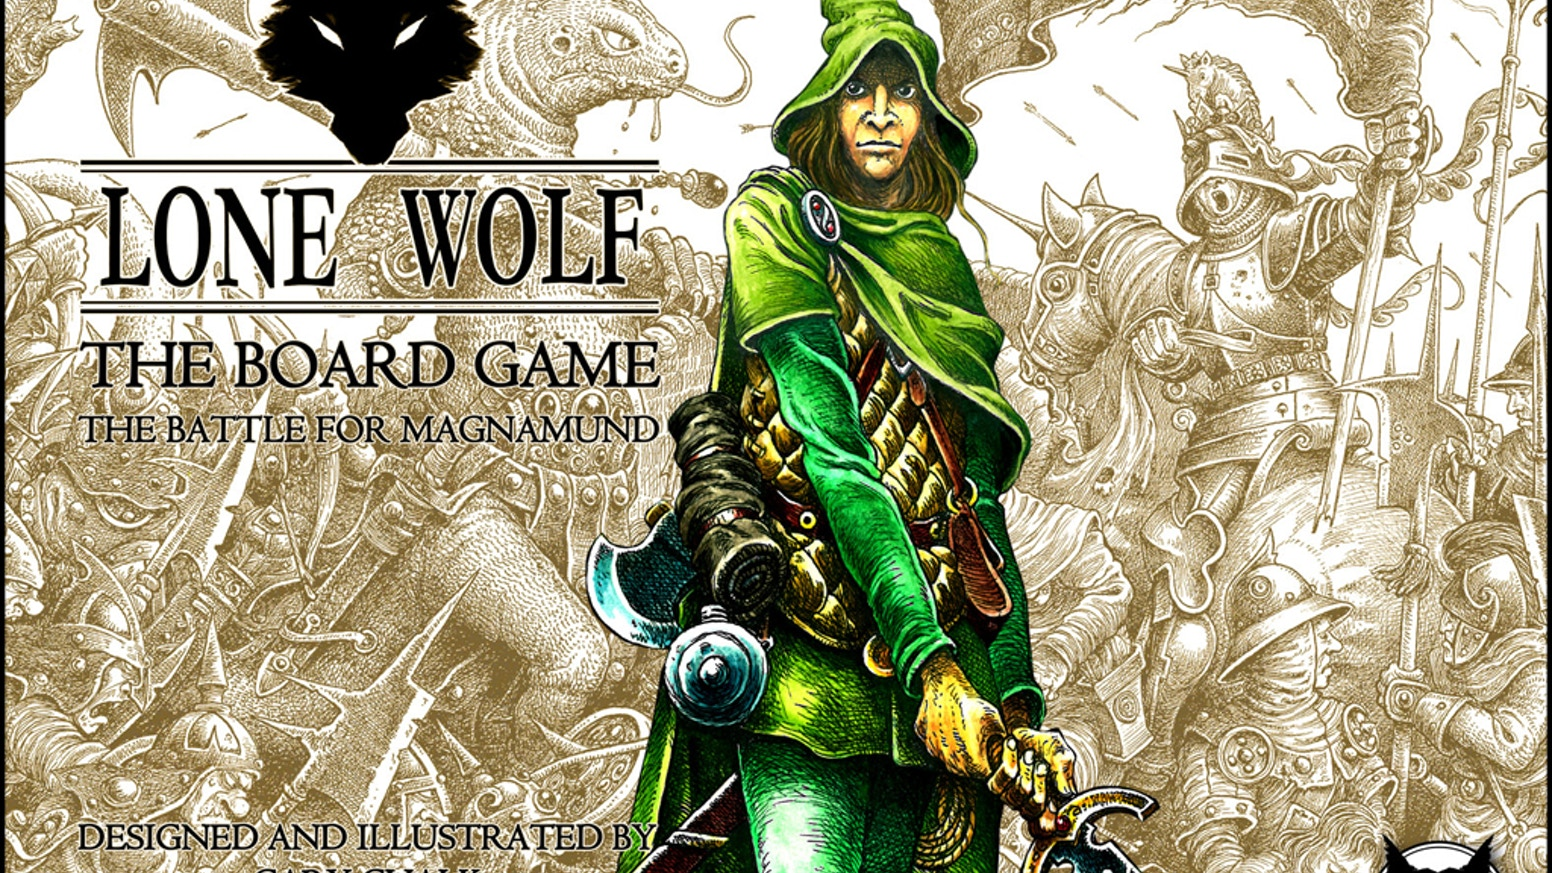 The Lone Wolf fantasy gamebooks raised a generation of gamers.  After 30 years on his shelf, Gary Chalk has a surprise for us.